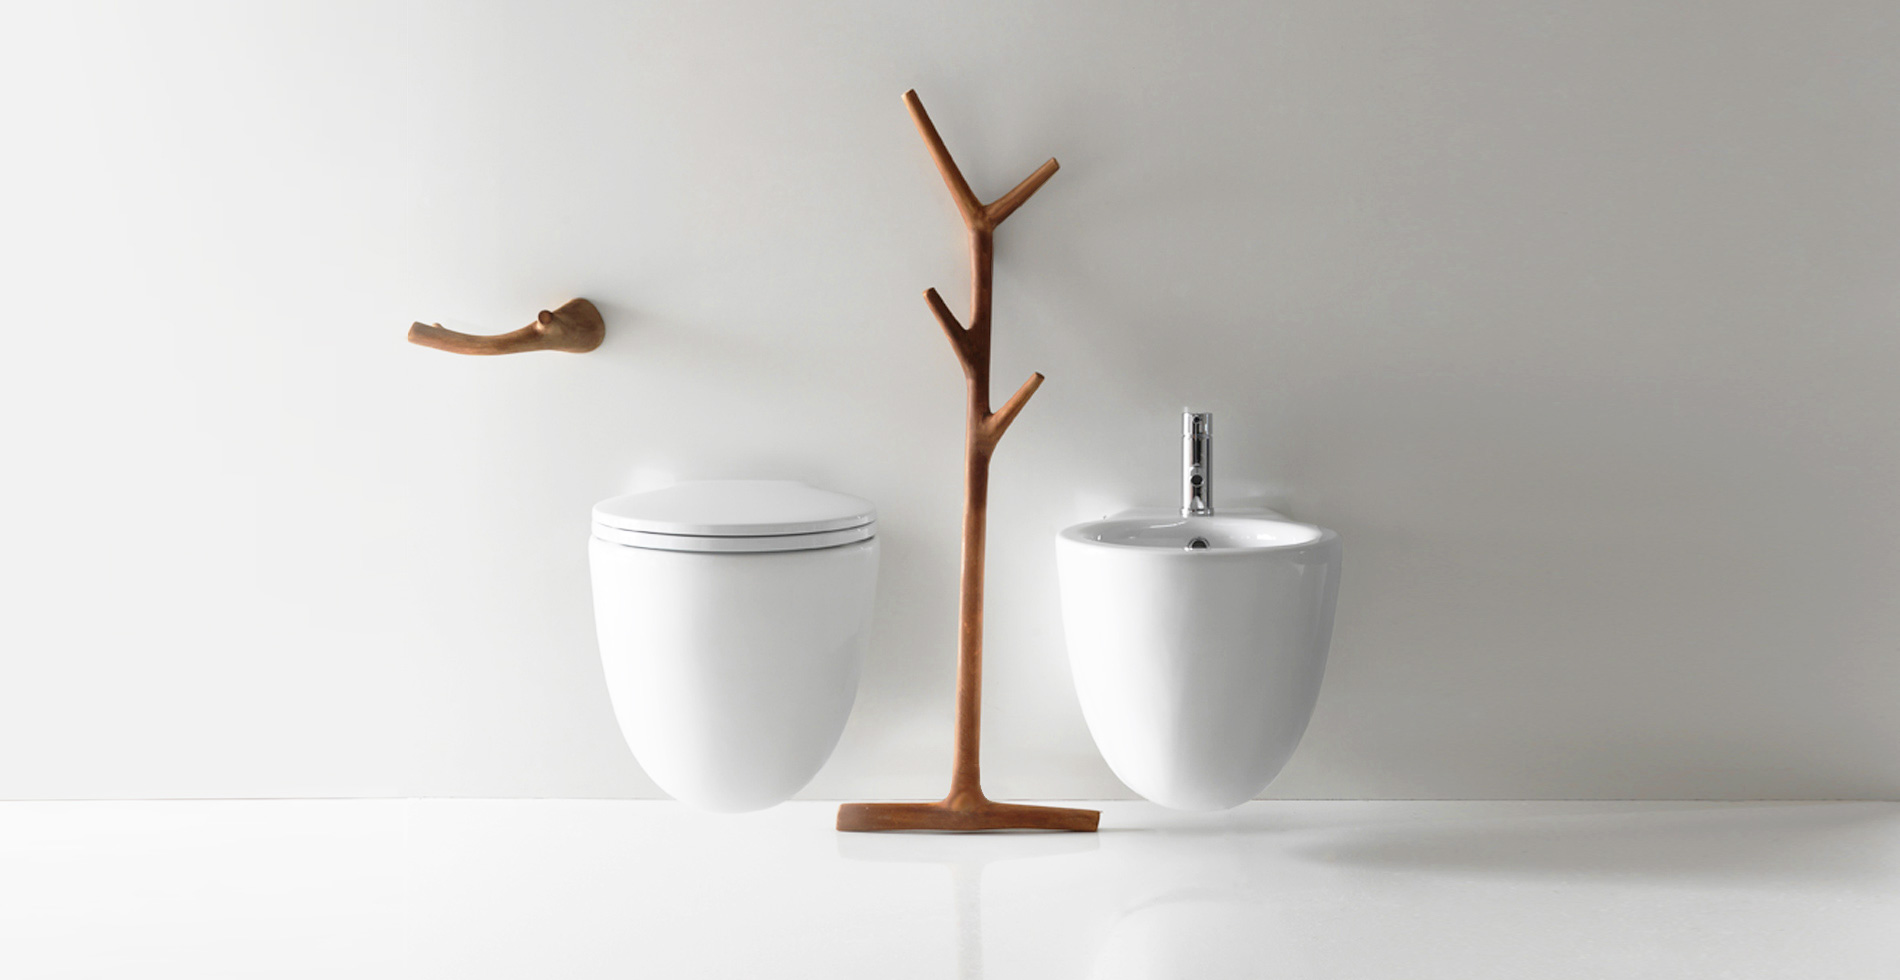 Ergo collection - bathroom towel hanger rail made of iroko solid wood tree shape | Design by Antonio Pascale | Made in Italy